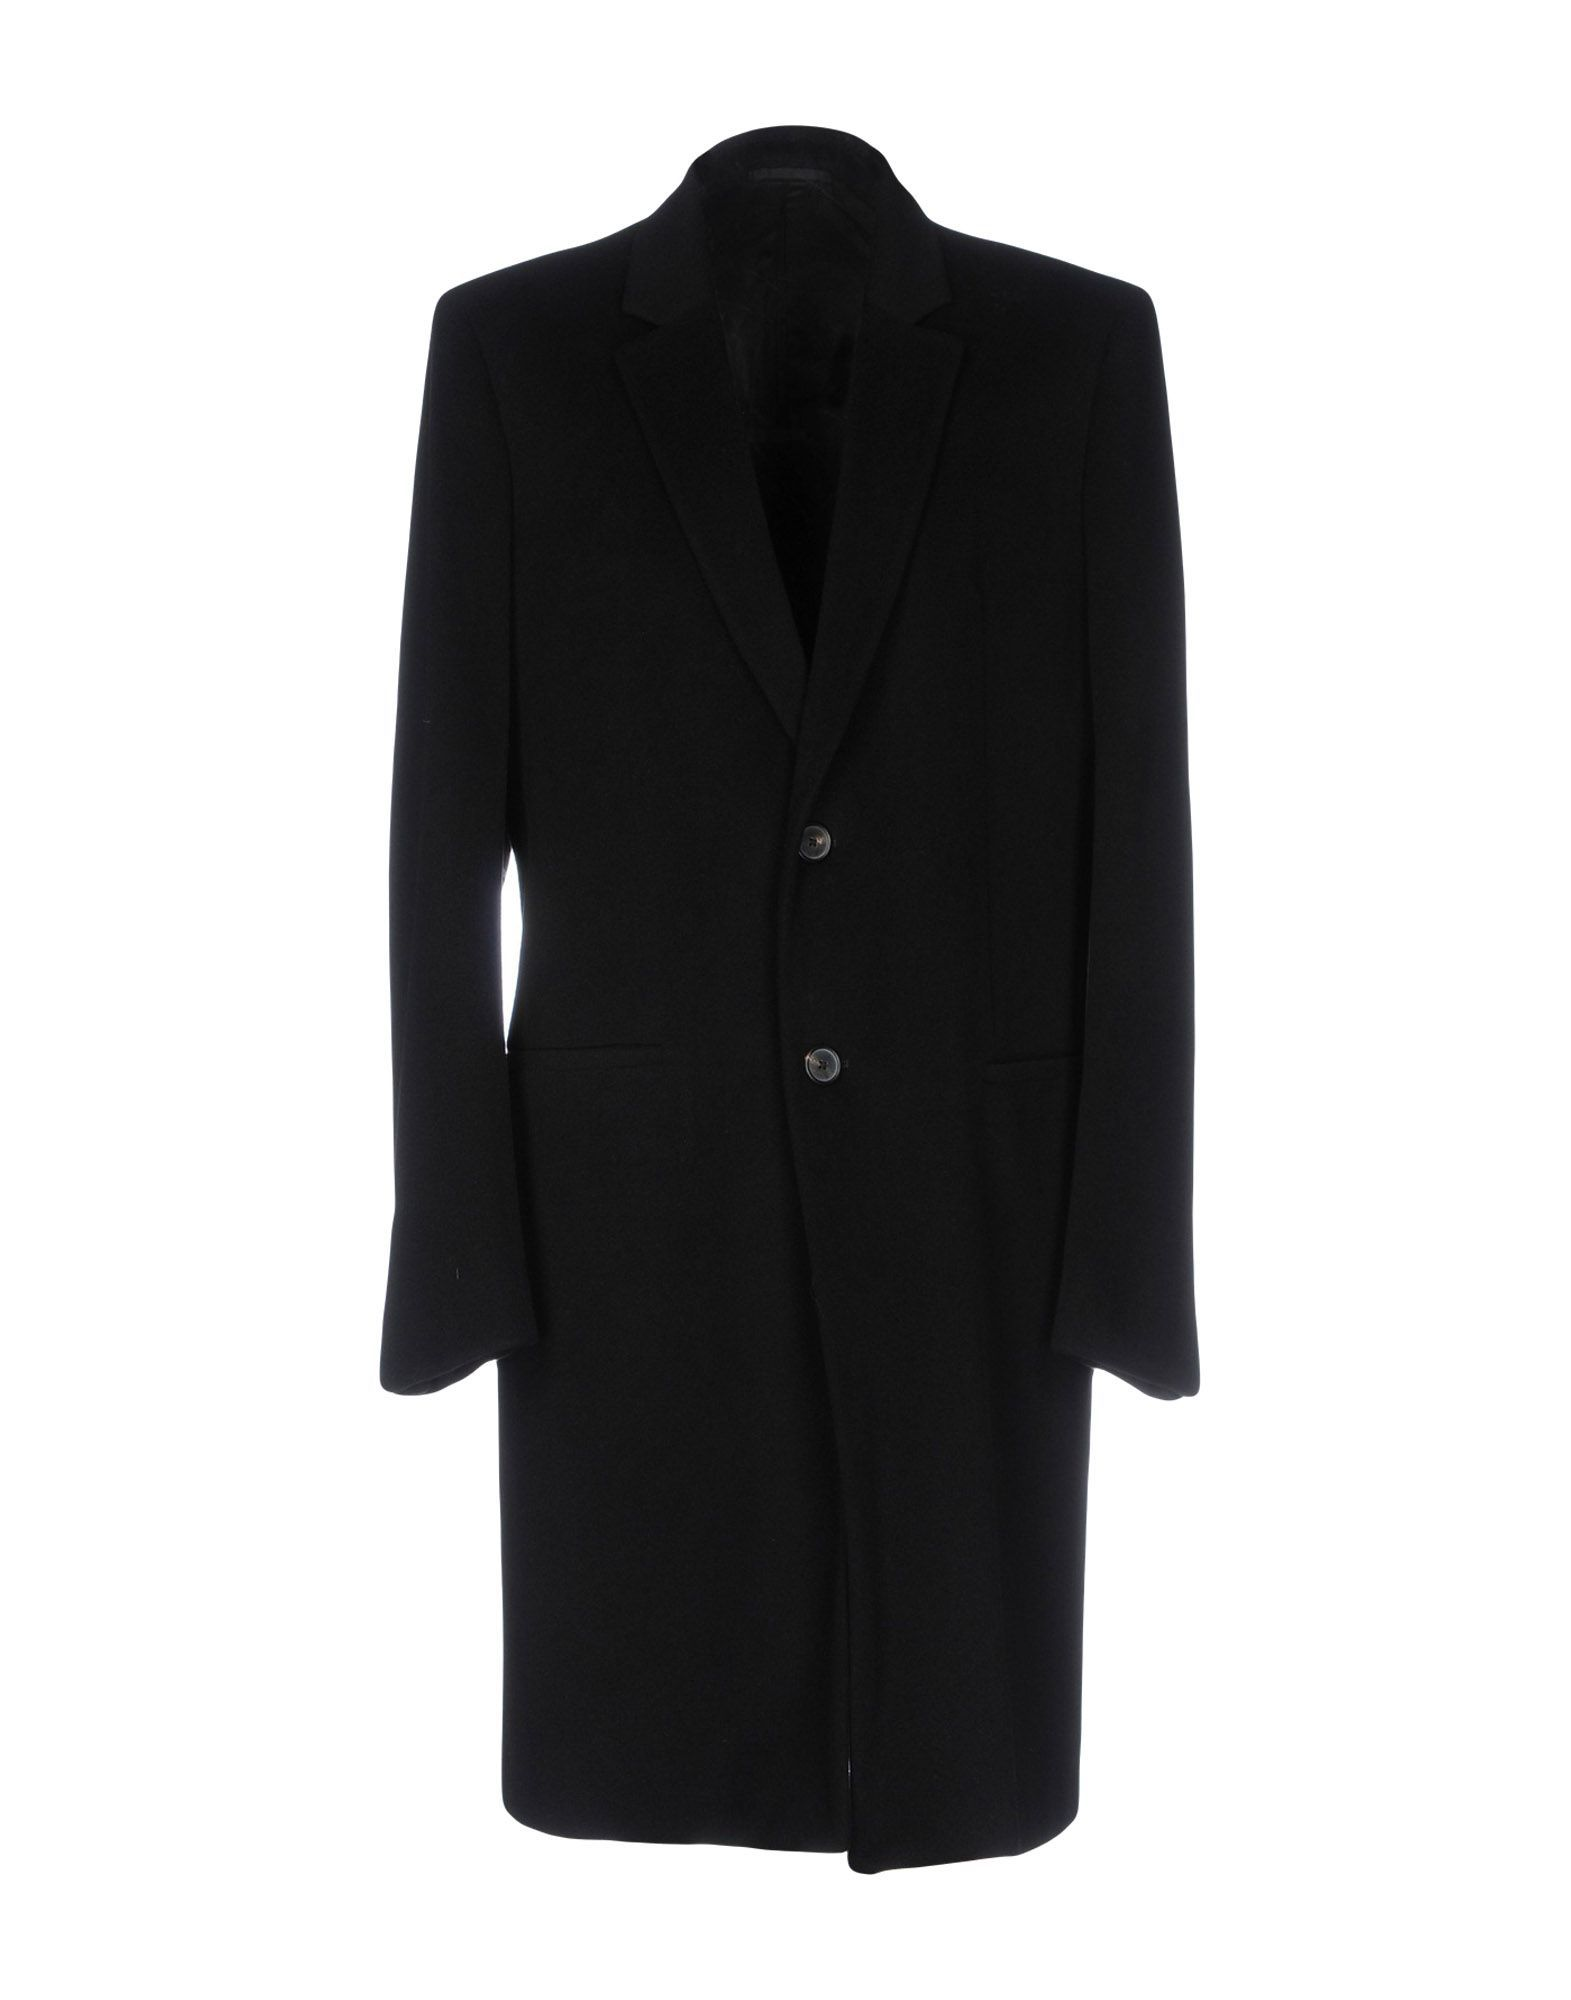 Jil Sander Black Wool Overcoat